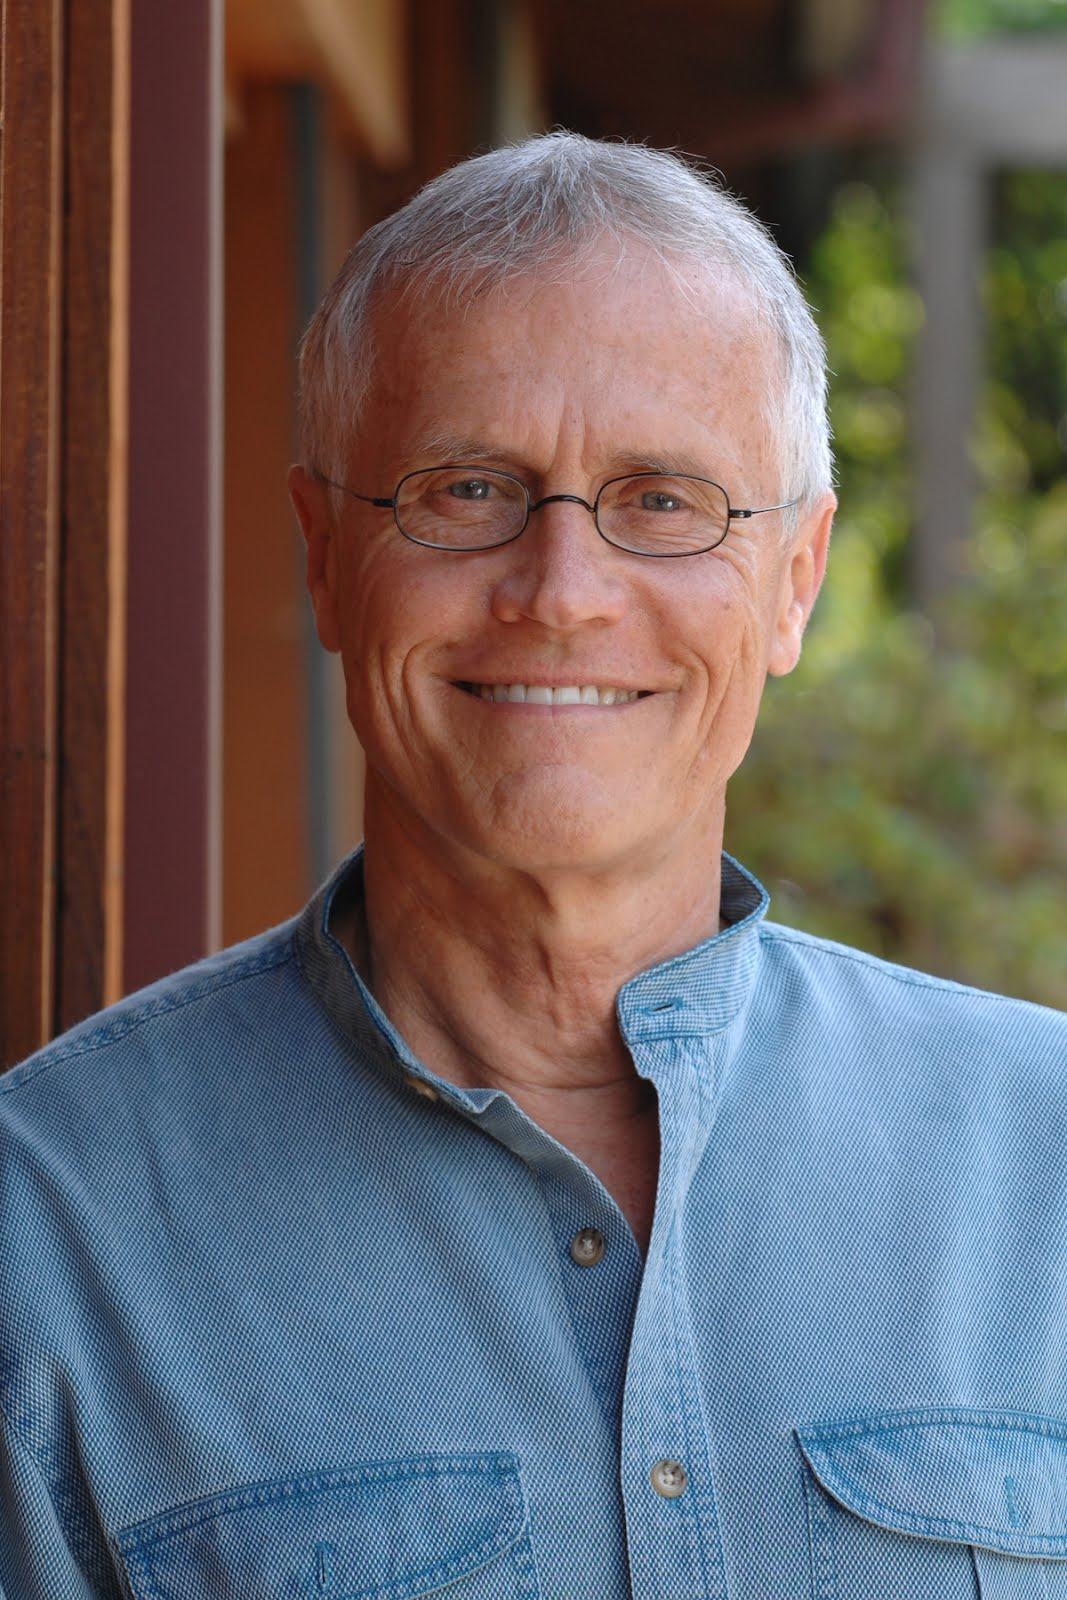 Paul Hawken defines sustainable business